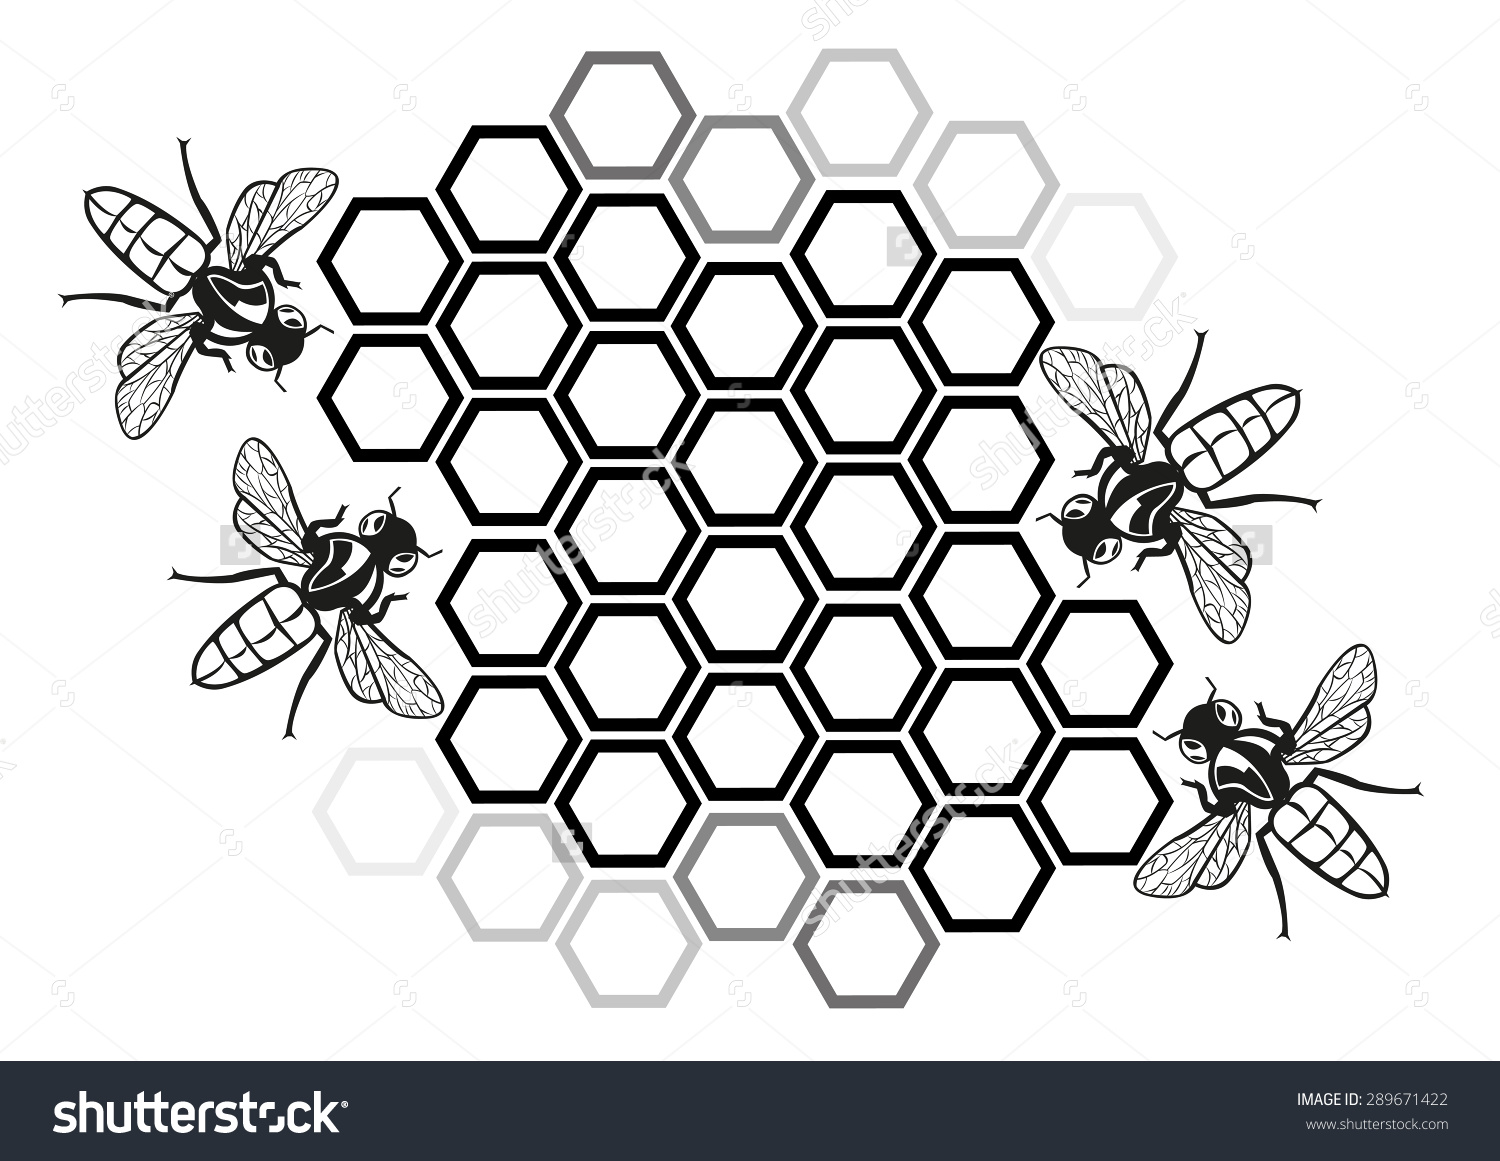 Flat Honey Bee Honeycomb Illustration Silhouette Stock Vektor.